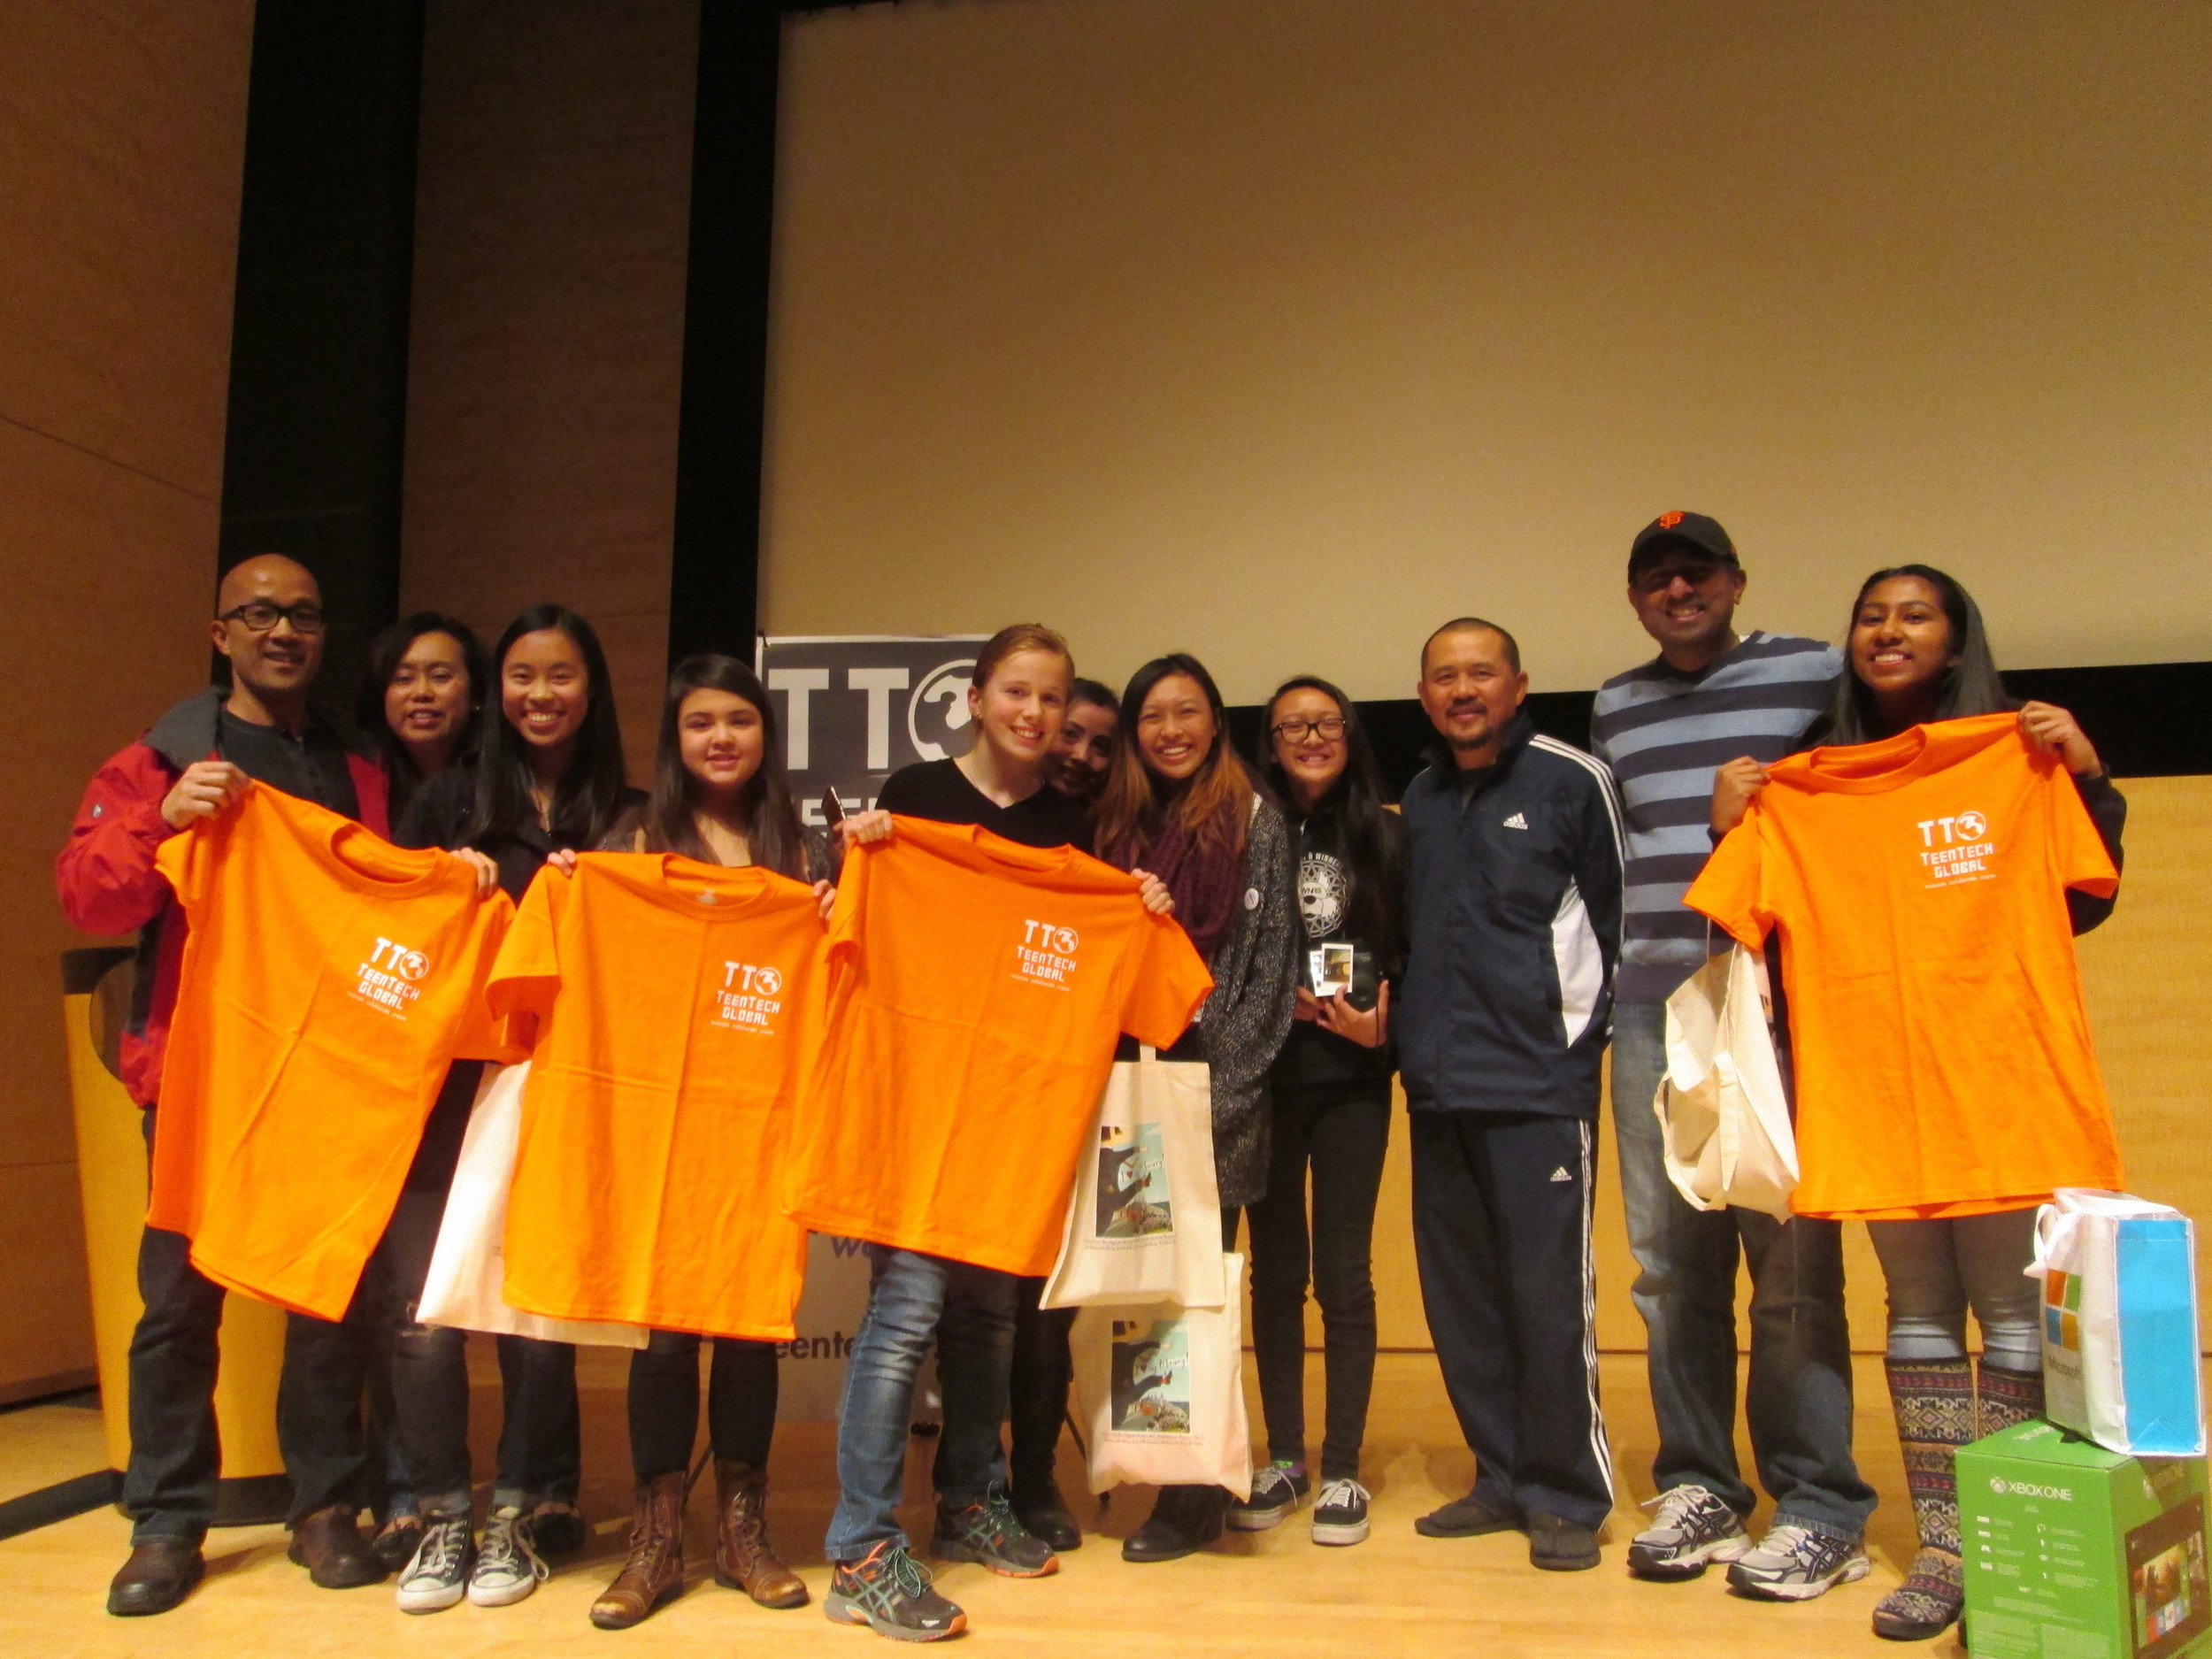 Winning Project EduVoice by The Dream Team: Proud parents and TTSF t-shirts